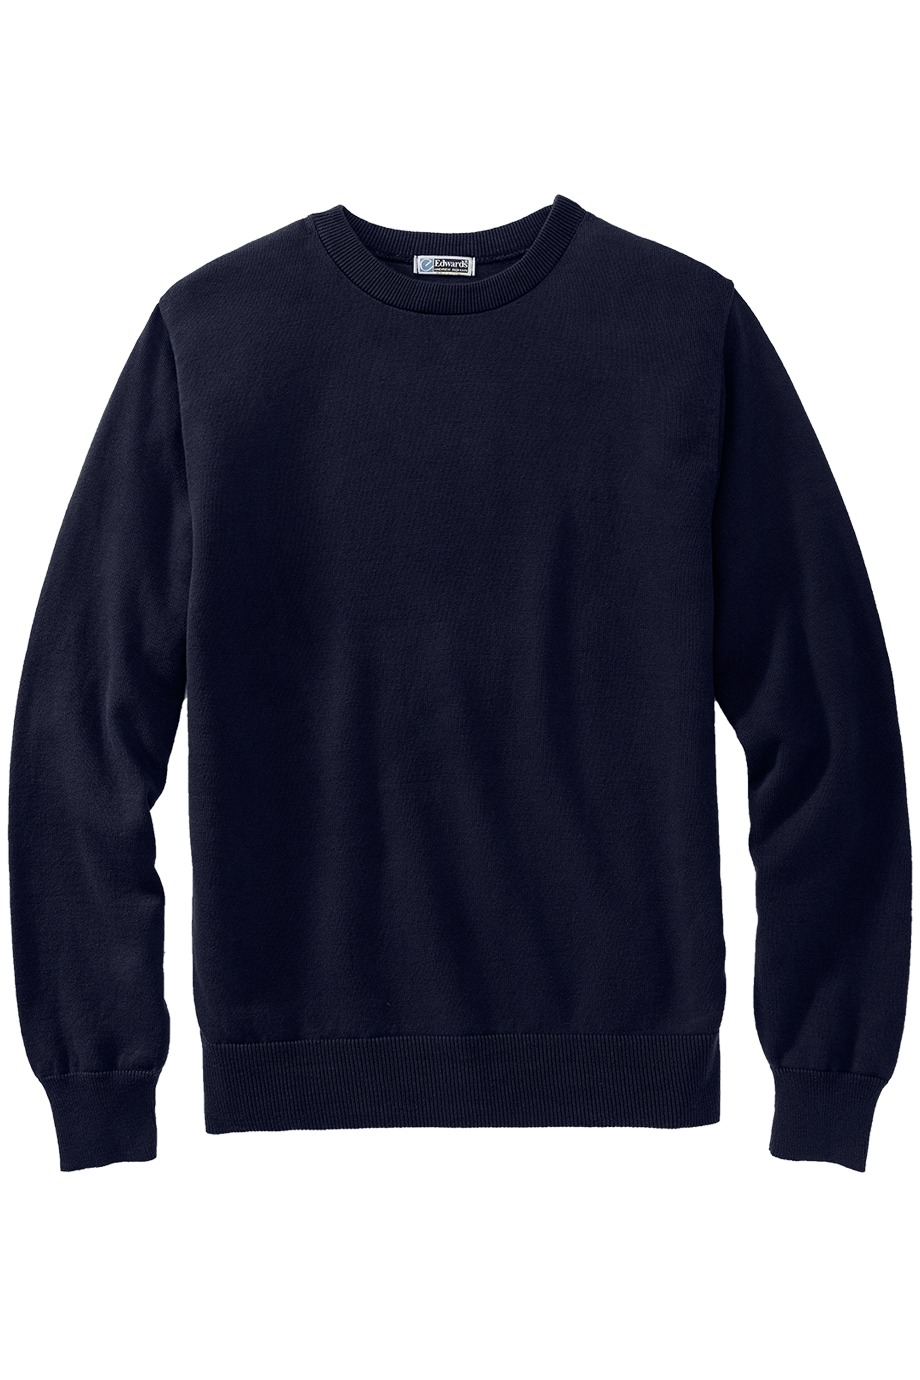 Edwards Garment 4086 - Fine Gauge Crew Neck Sweater